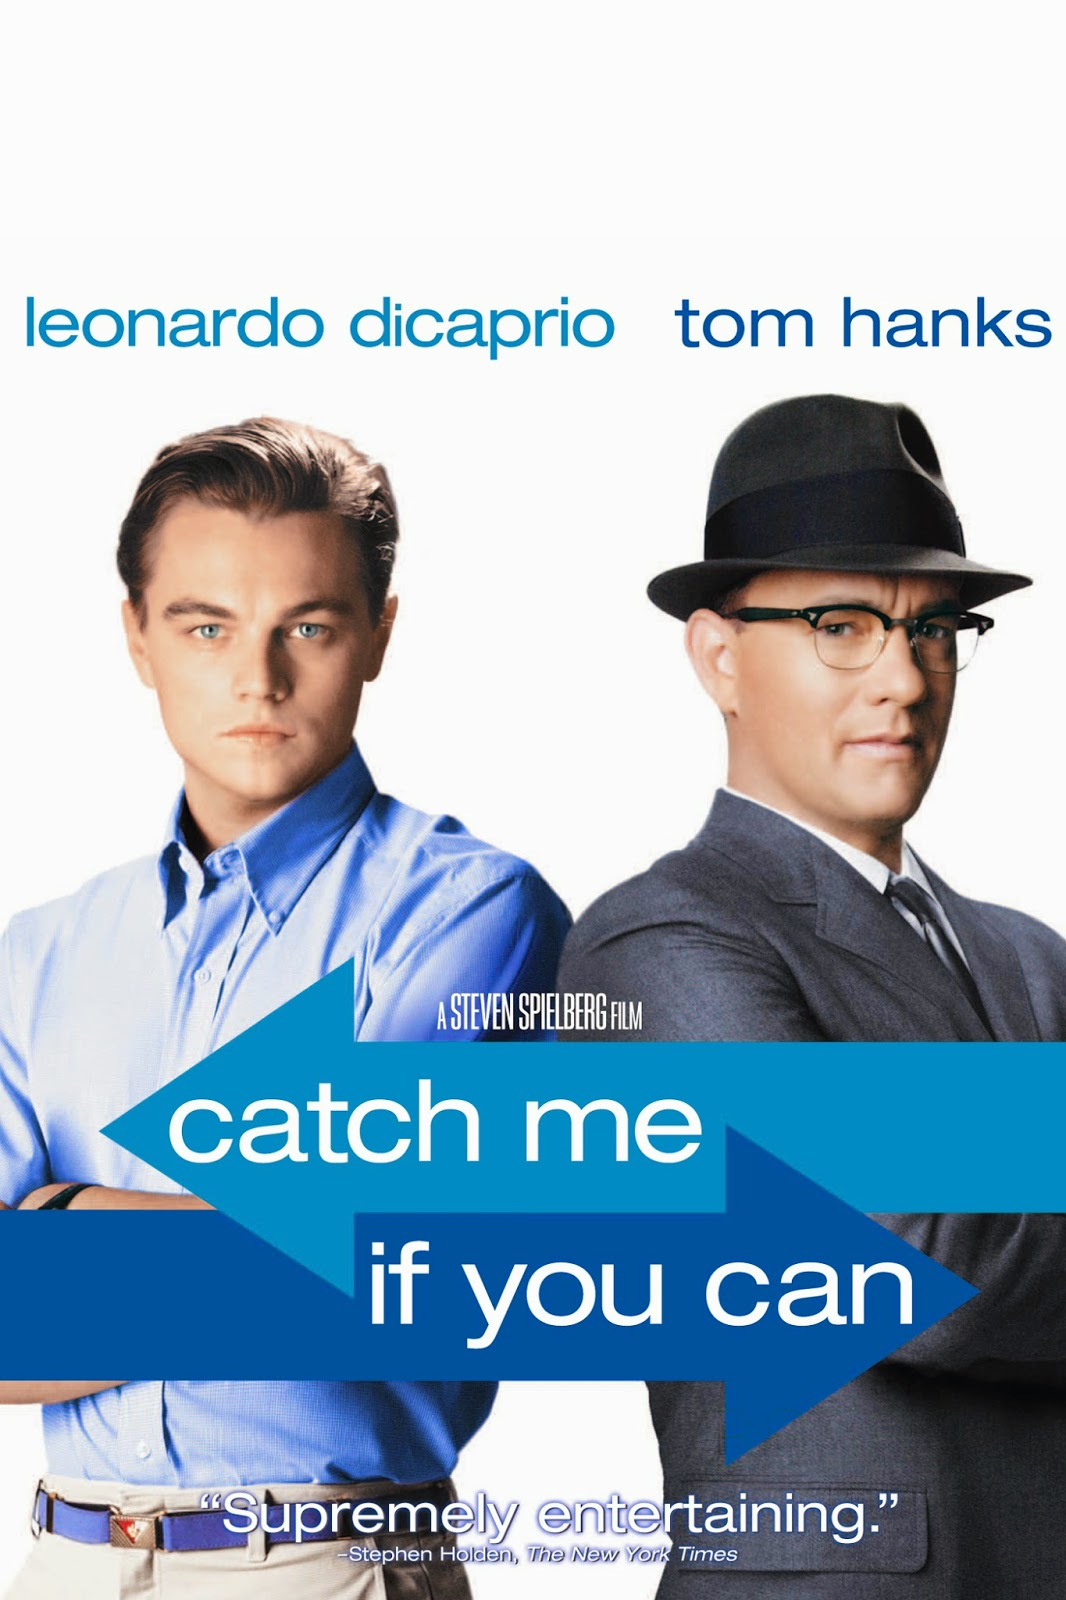 biography film, poster, wallpaper, leonardo de caprio, tom hanks